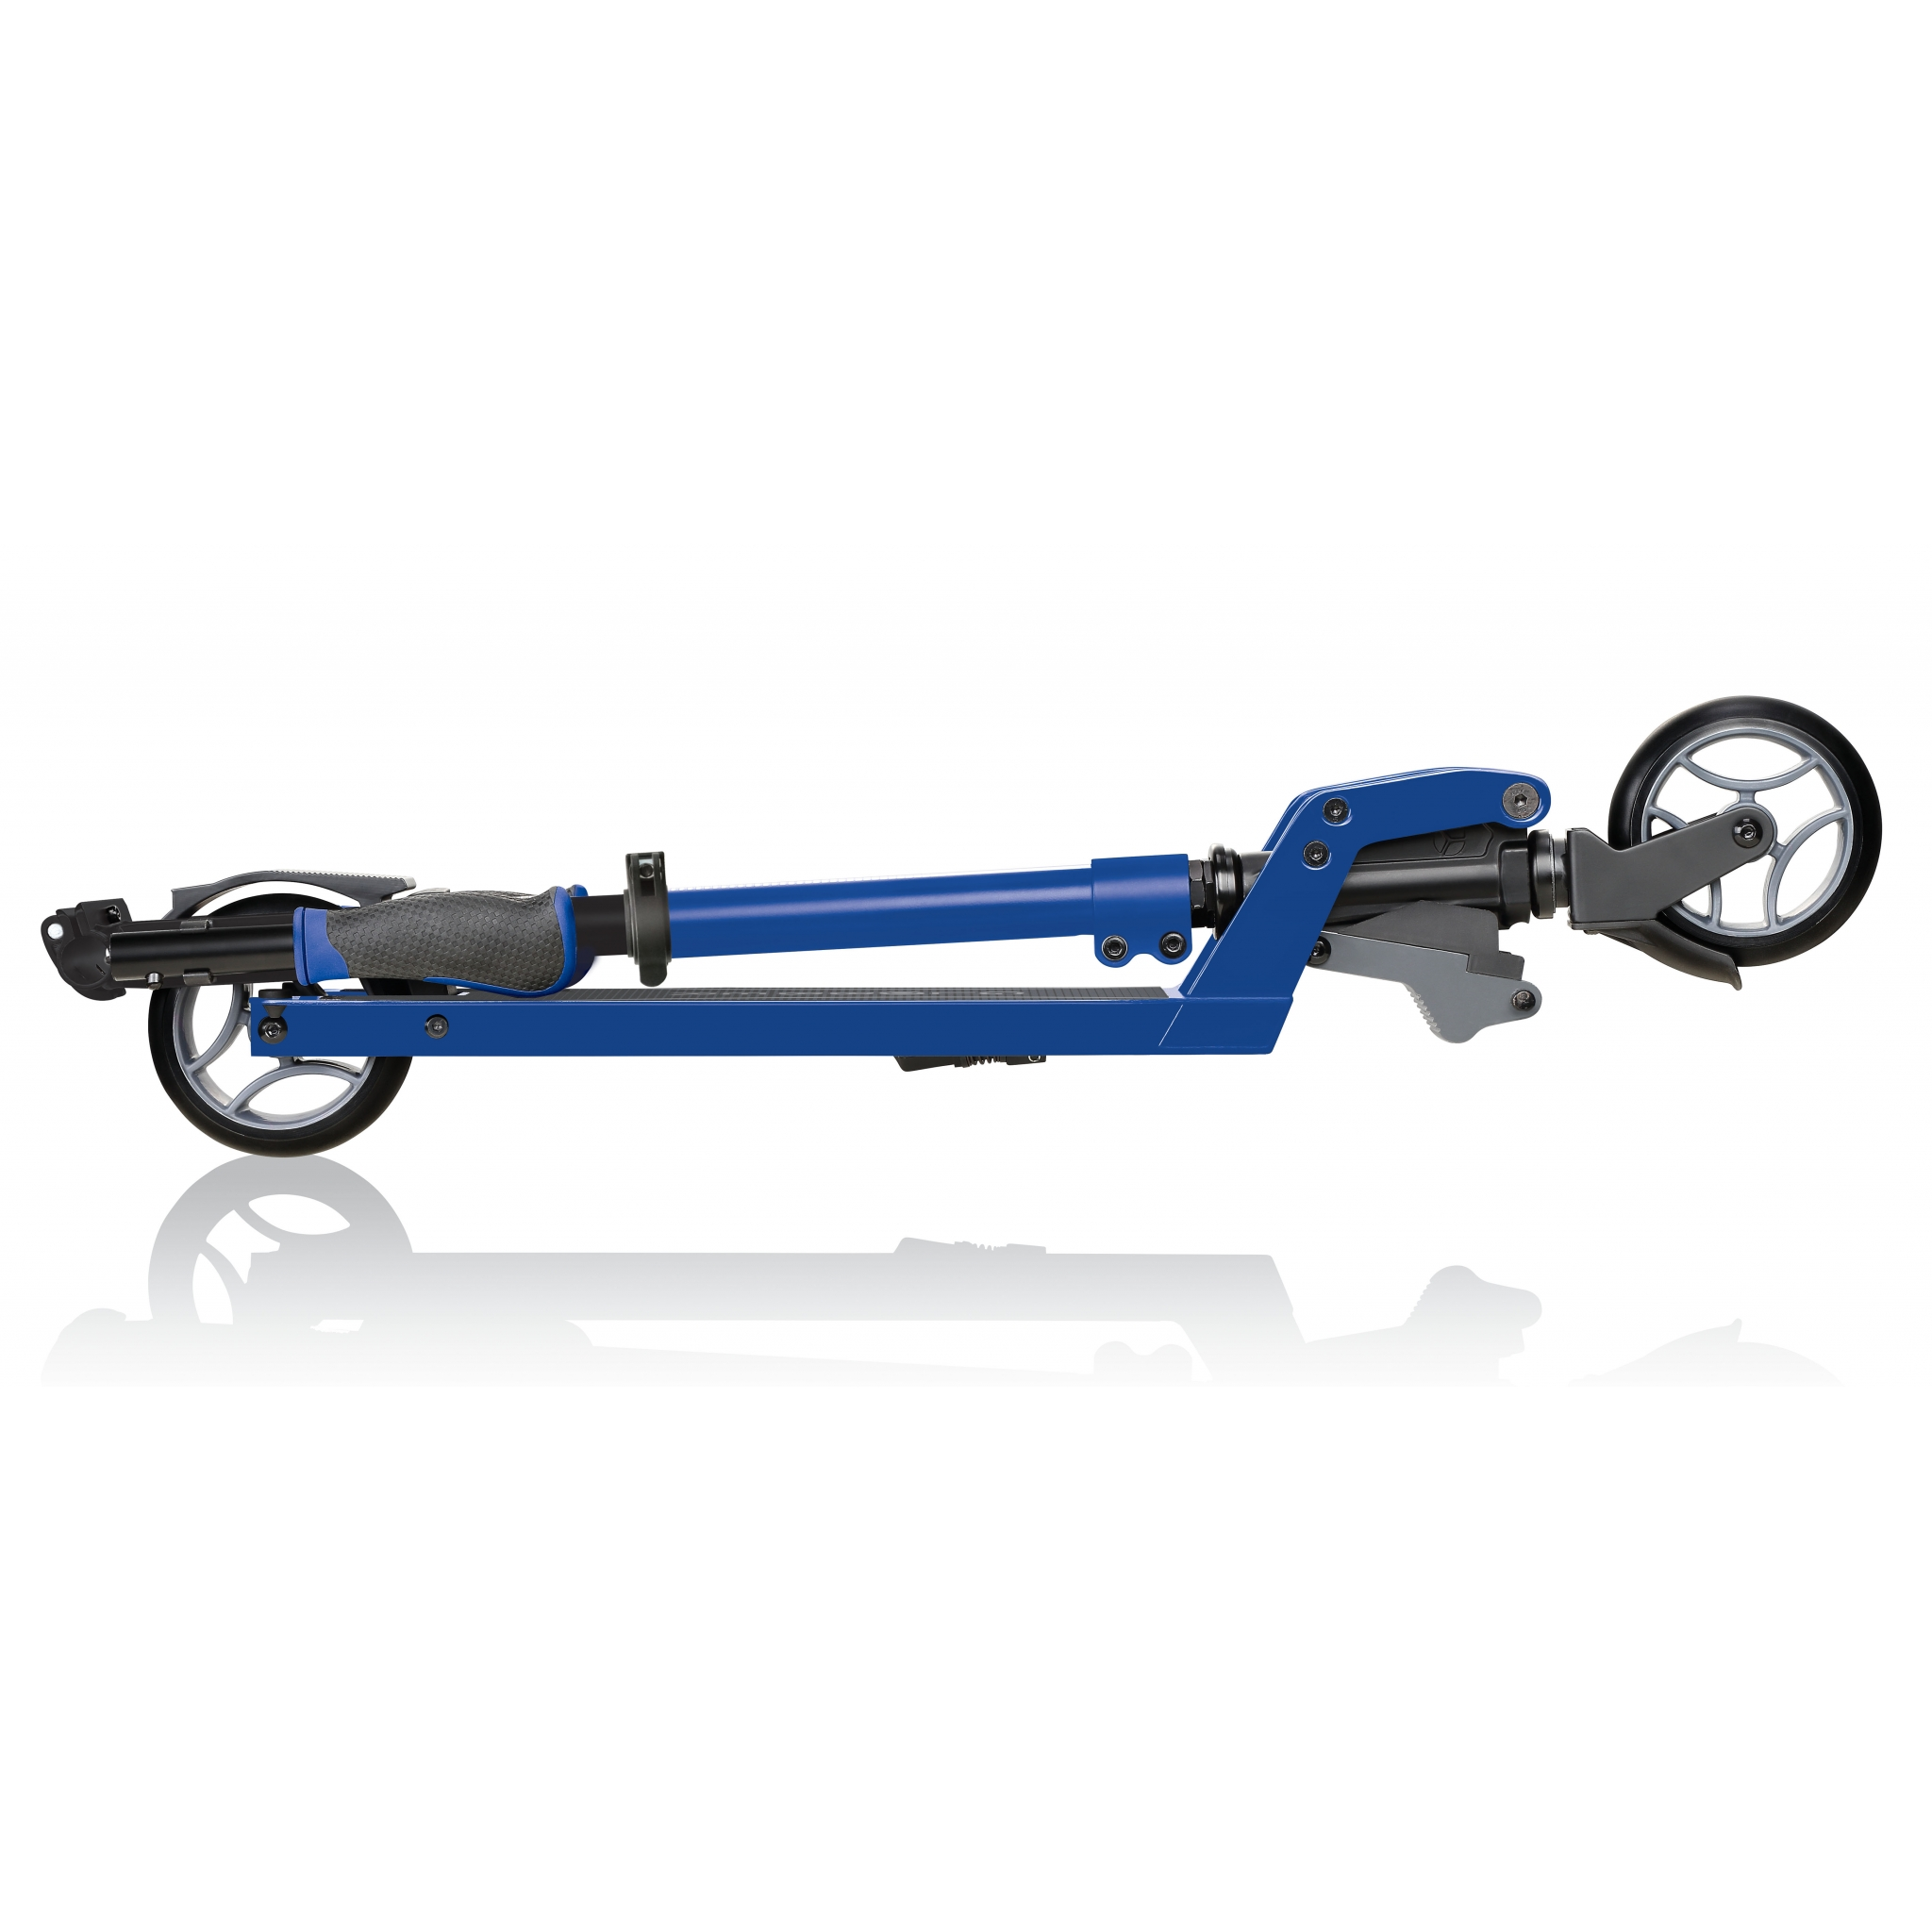 ONE-K-125-2-wheel-teen-scooter-foldable-scooter-and-handlebars_blue 3